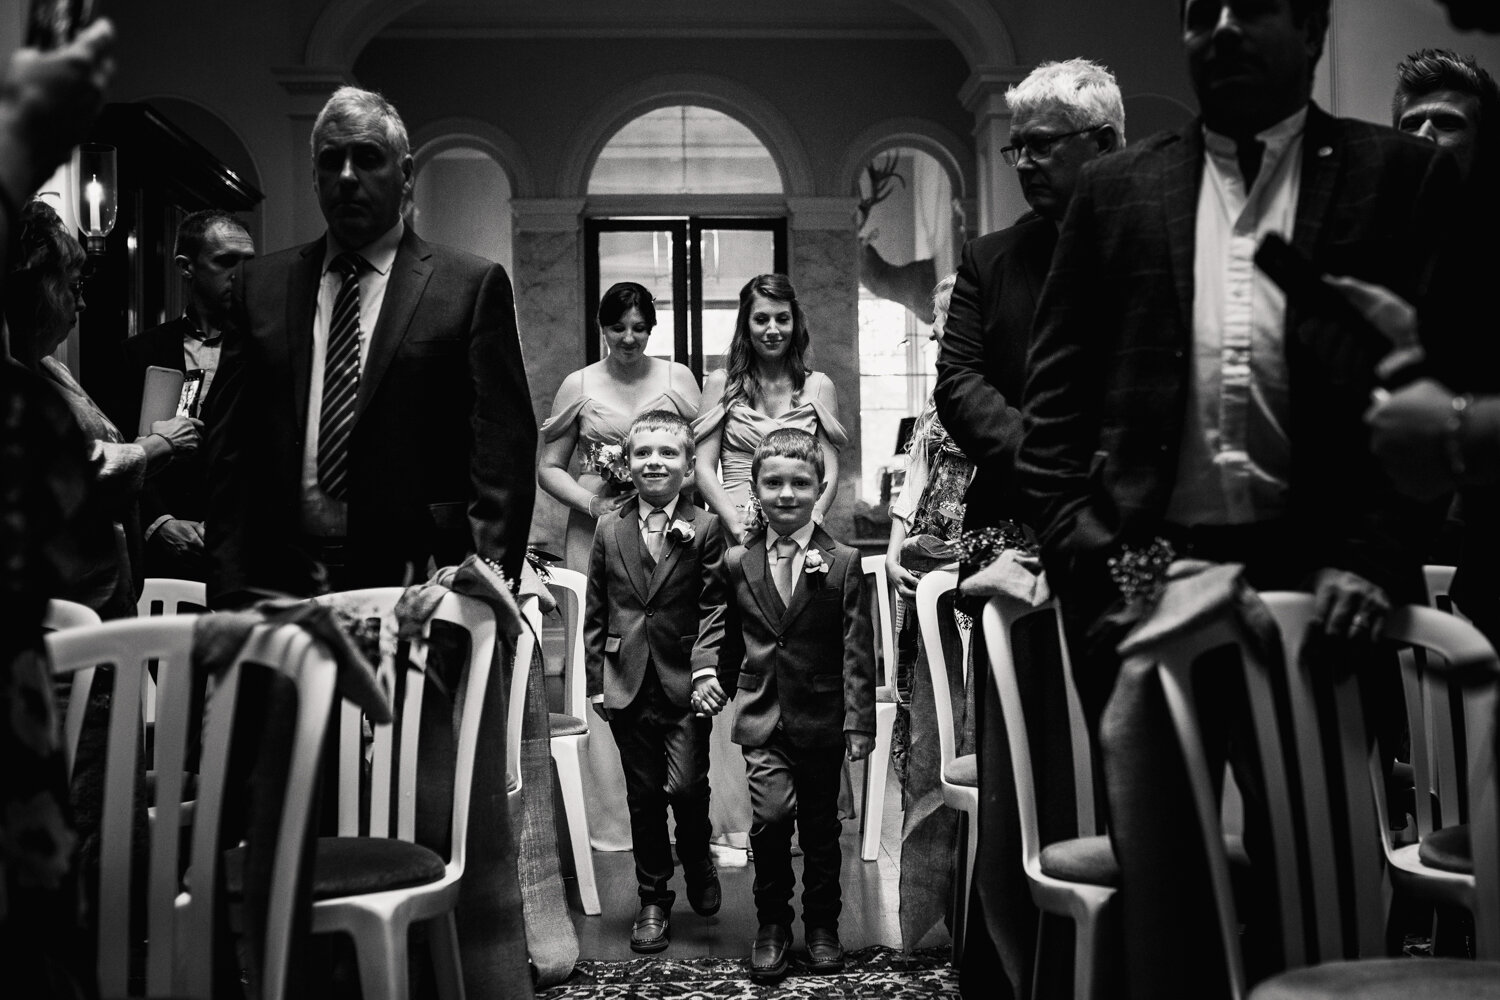 Kathryn_Clarke_Mcleod_Wedding_Photography-5.jpg